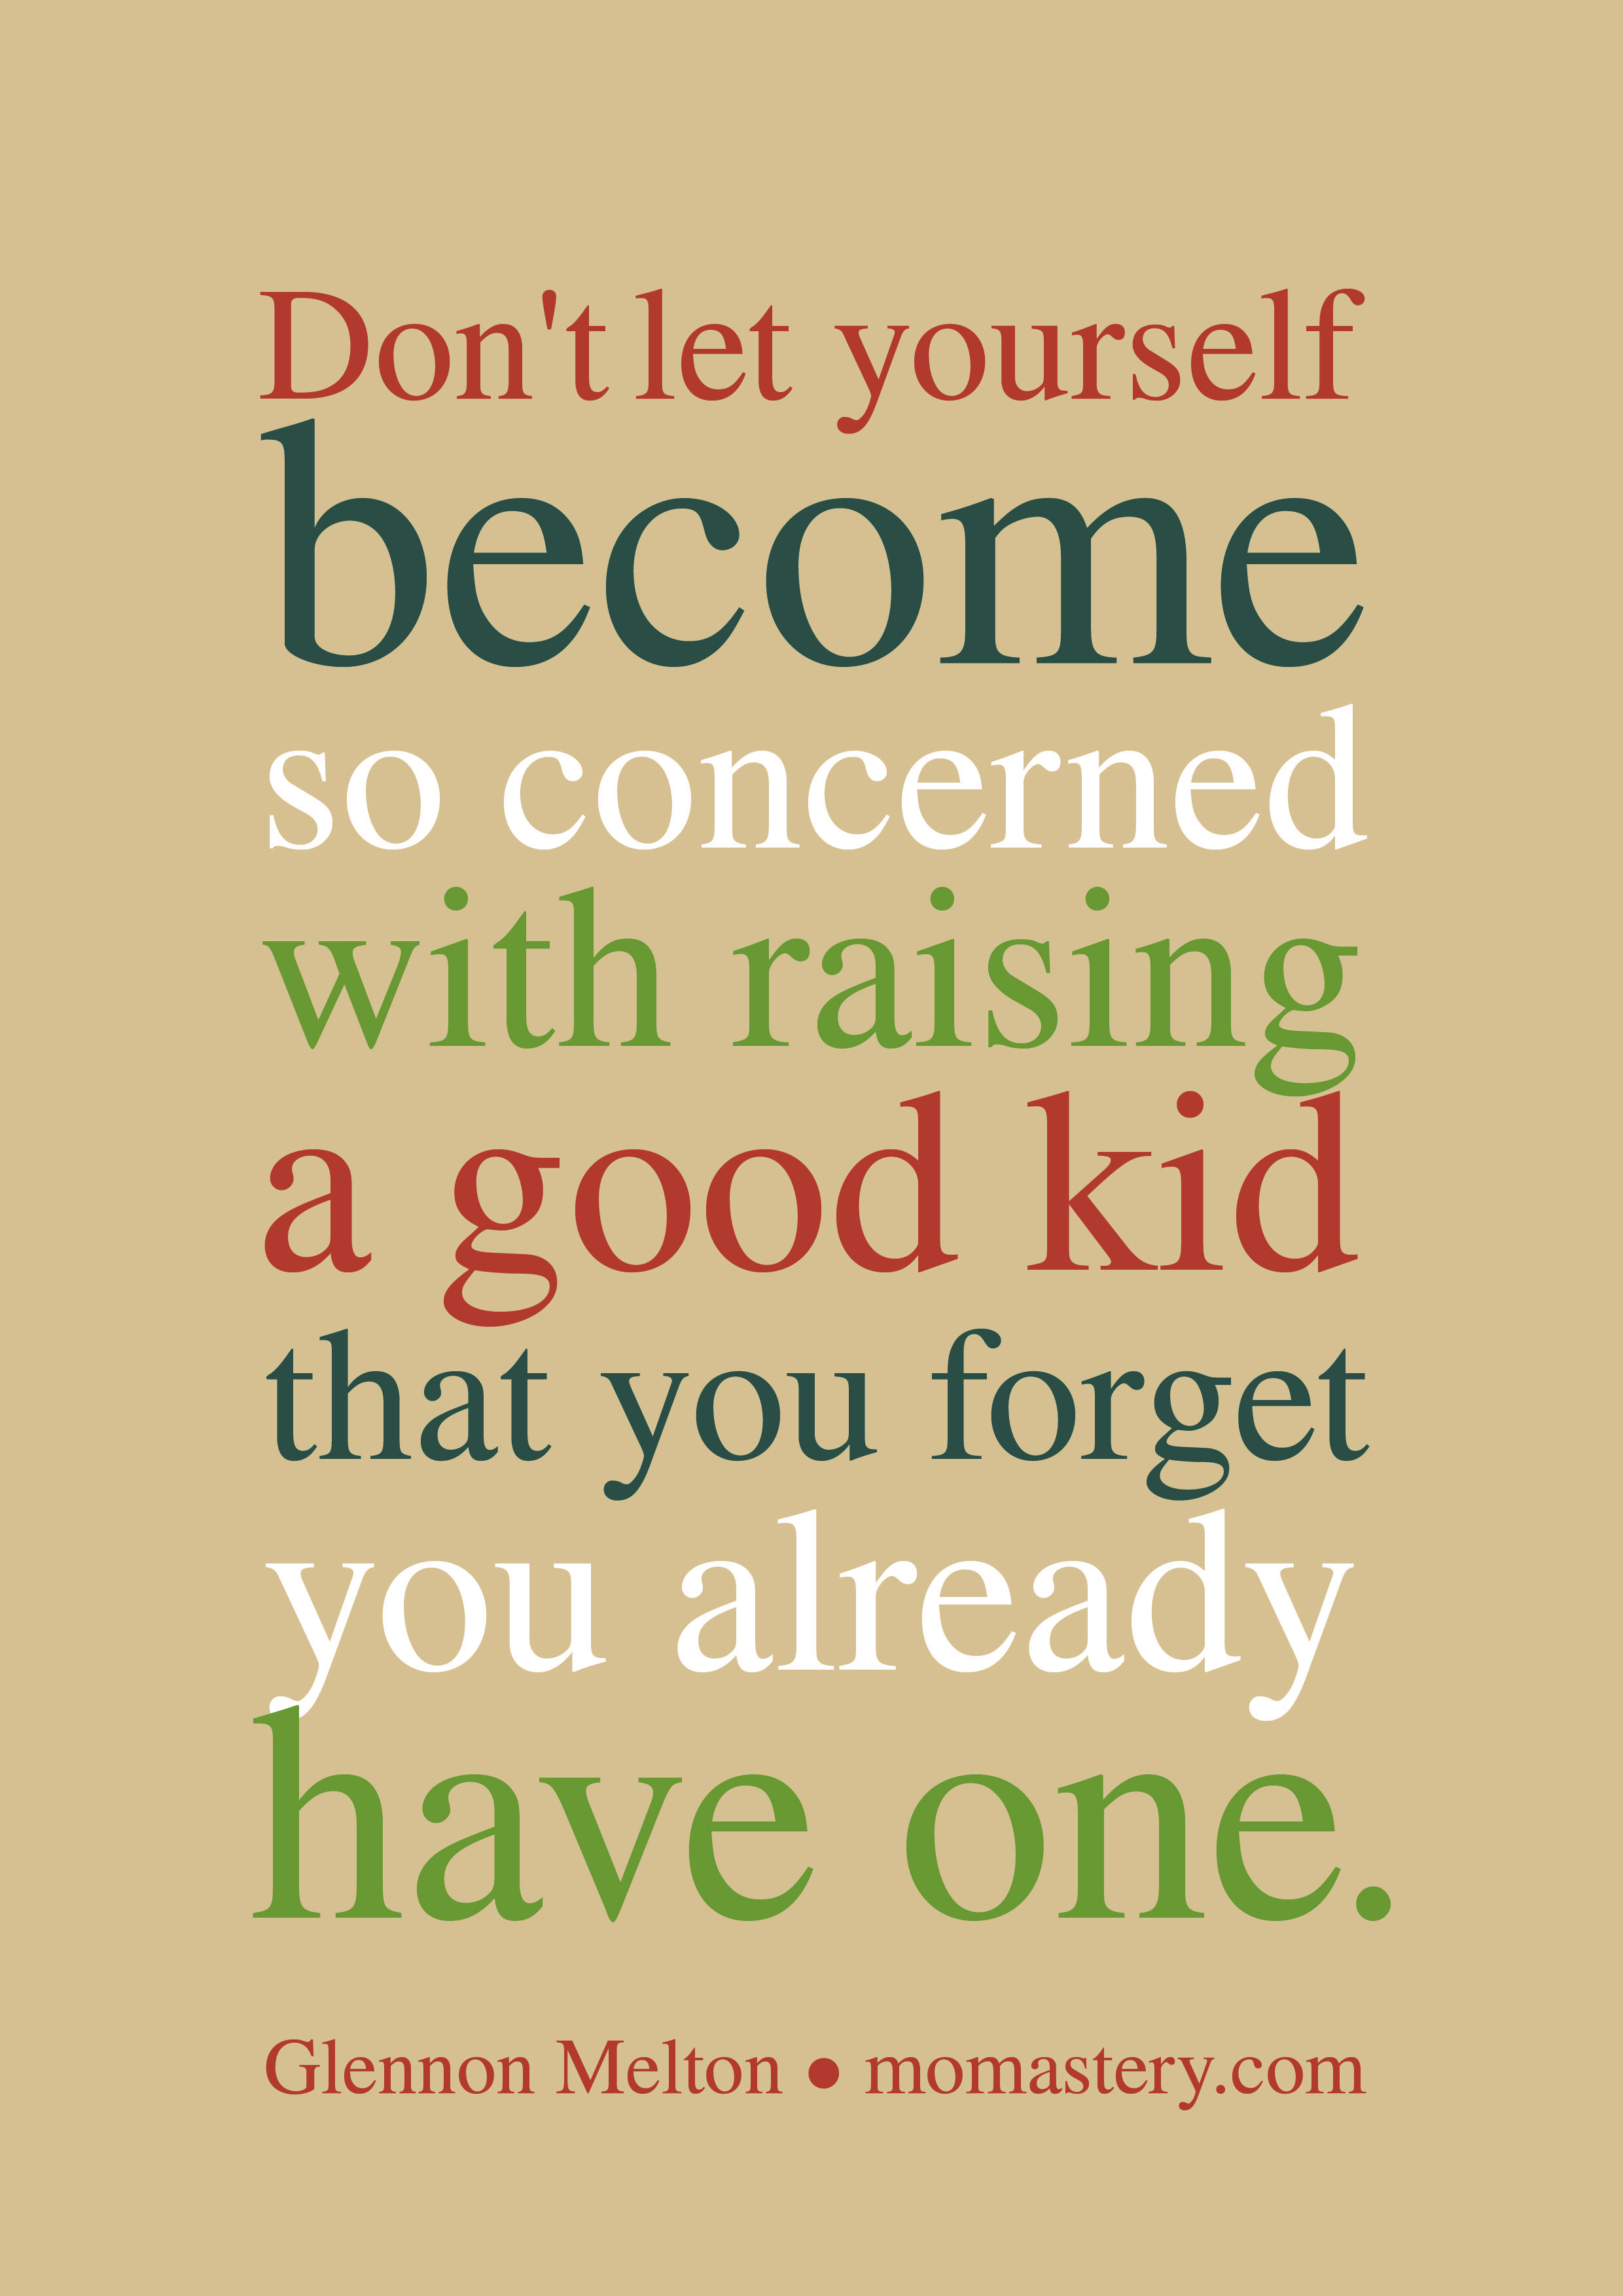 10 Inspiring Quotes To Get You Through The Day As A Parent To My